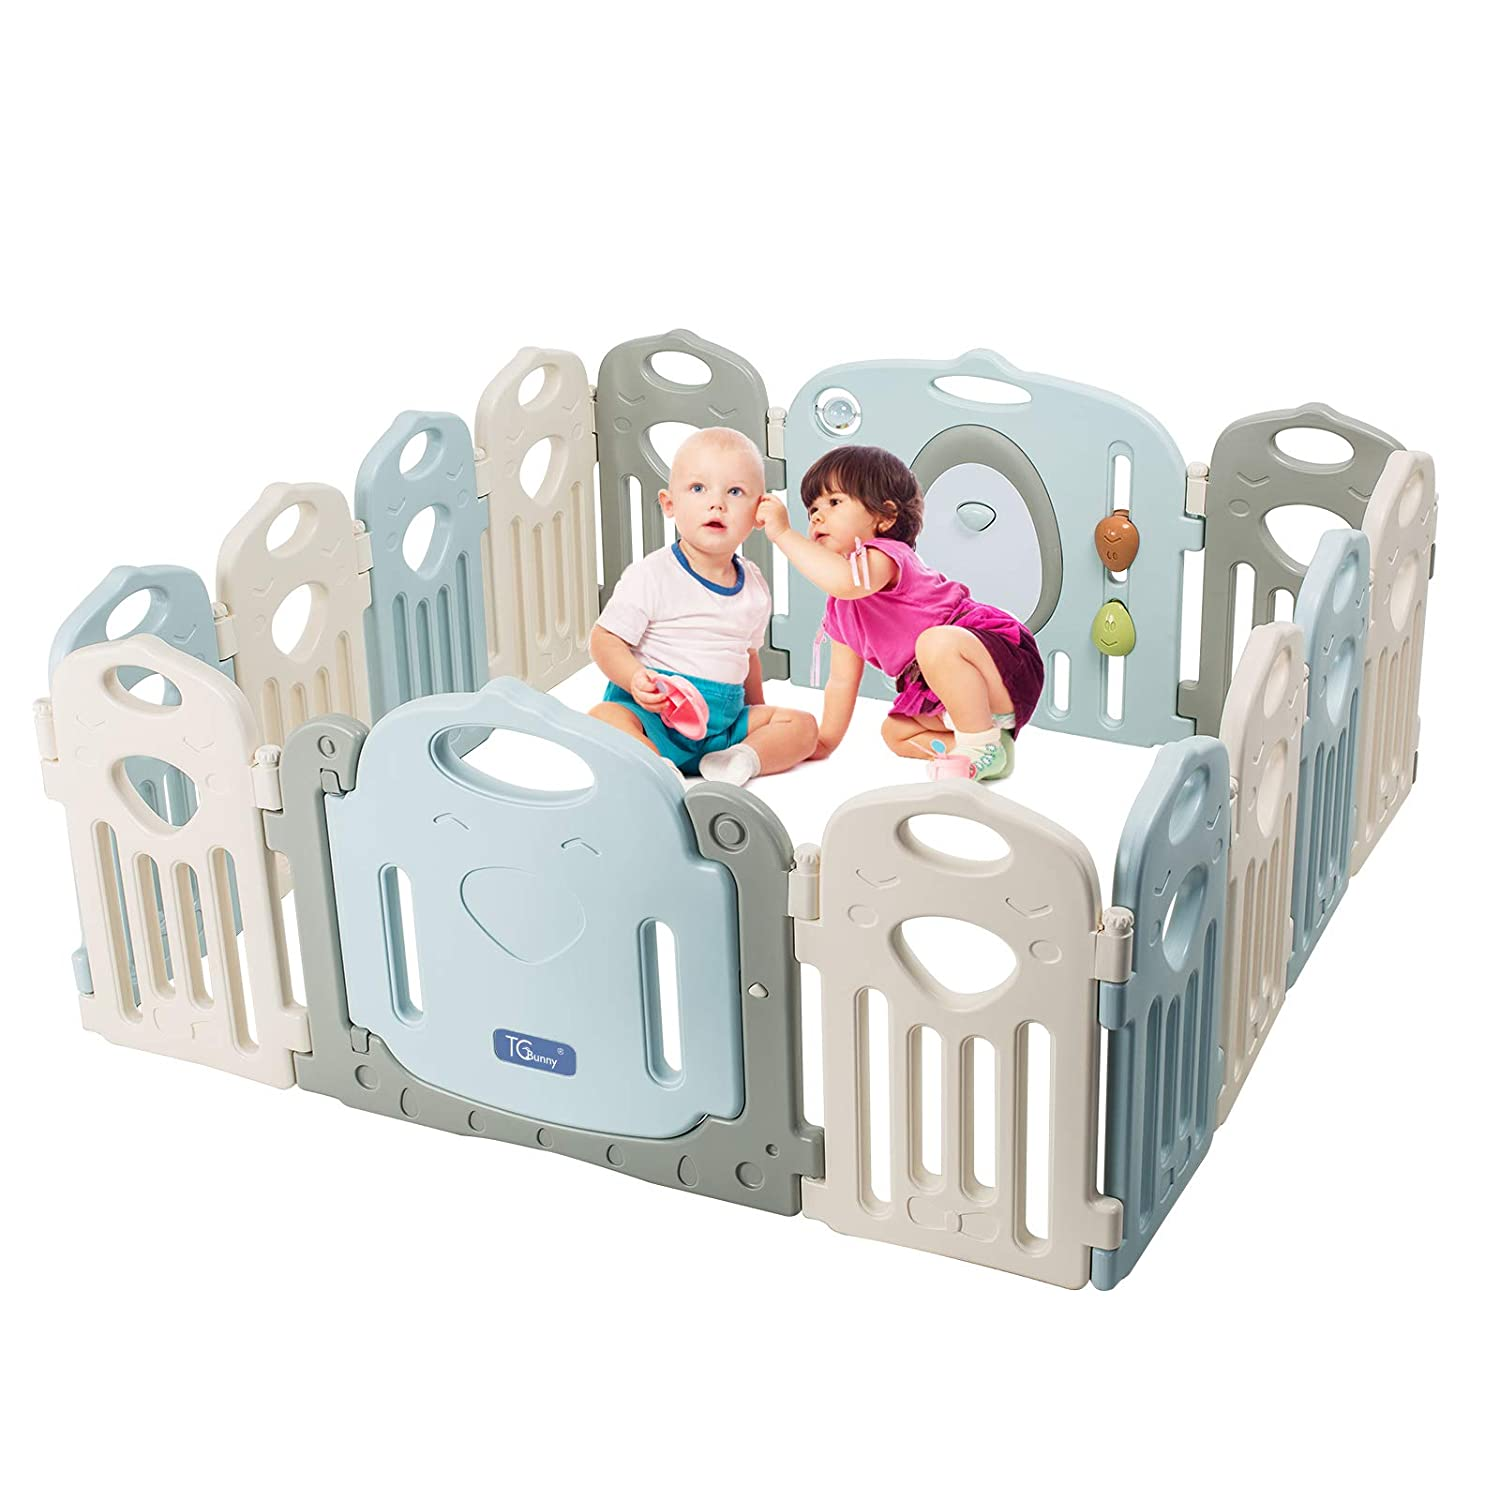 Baby Playpen - Kids 14 Panel Activity Centre Safety Play Yard, Home Indoor Outdoor New Pen TCBUNNY BPY-0003